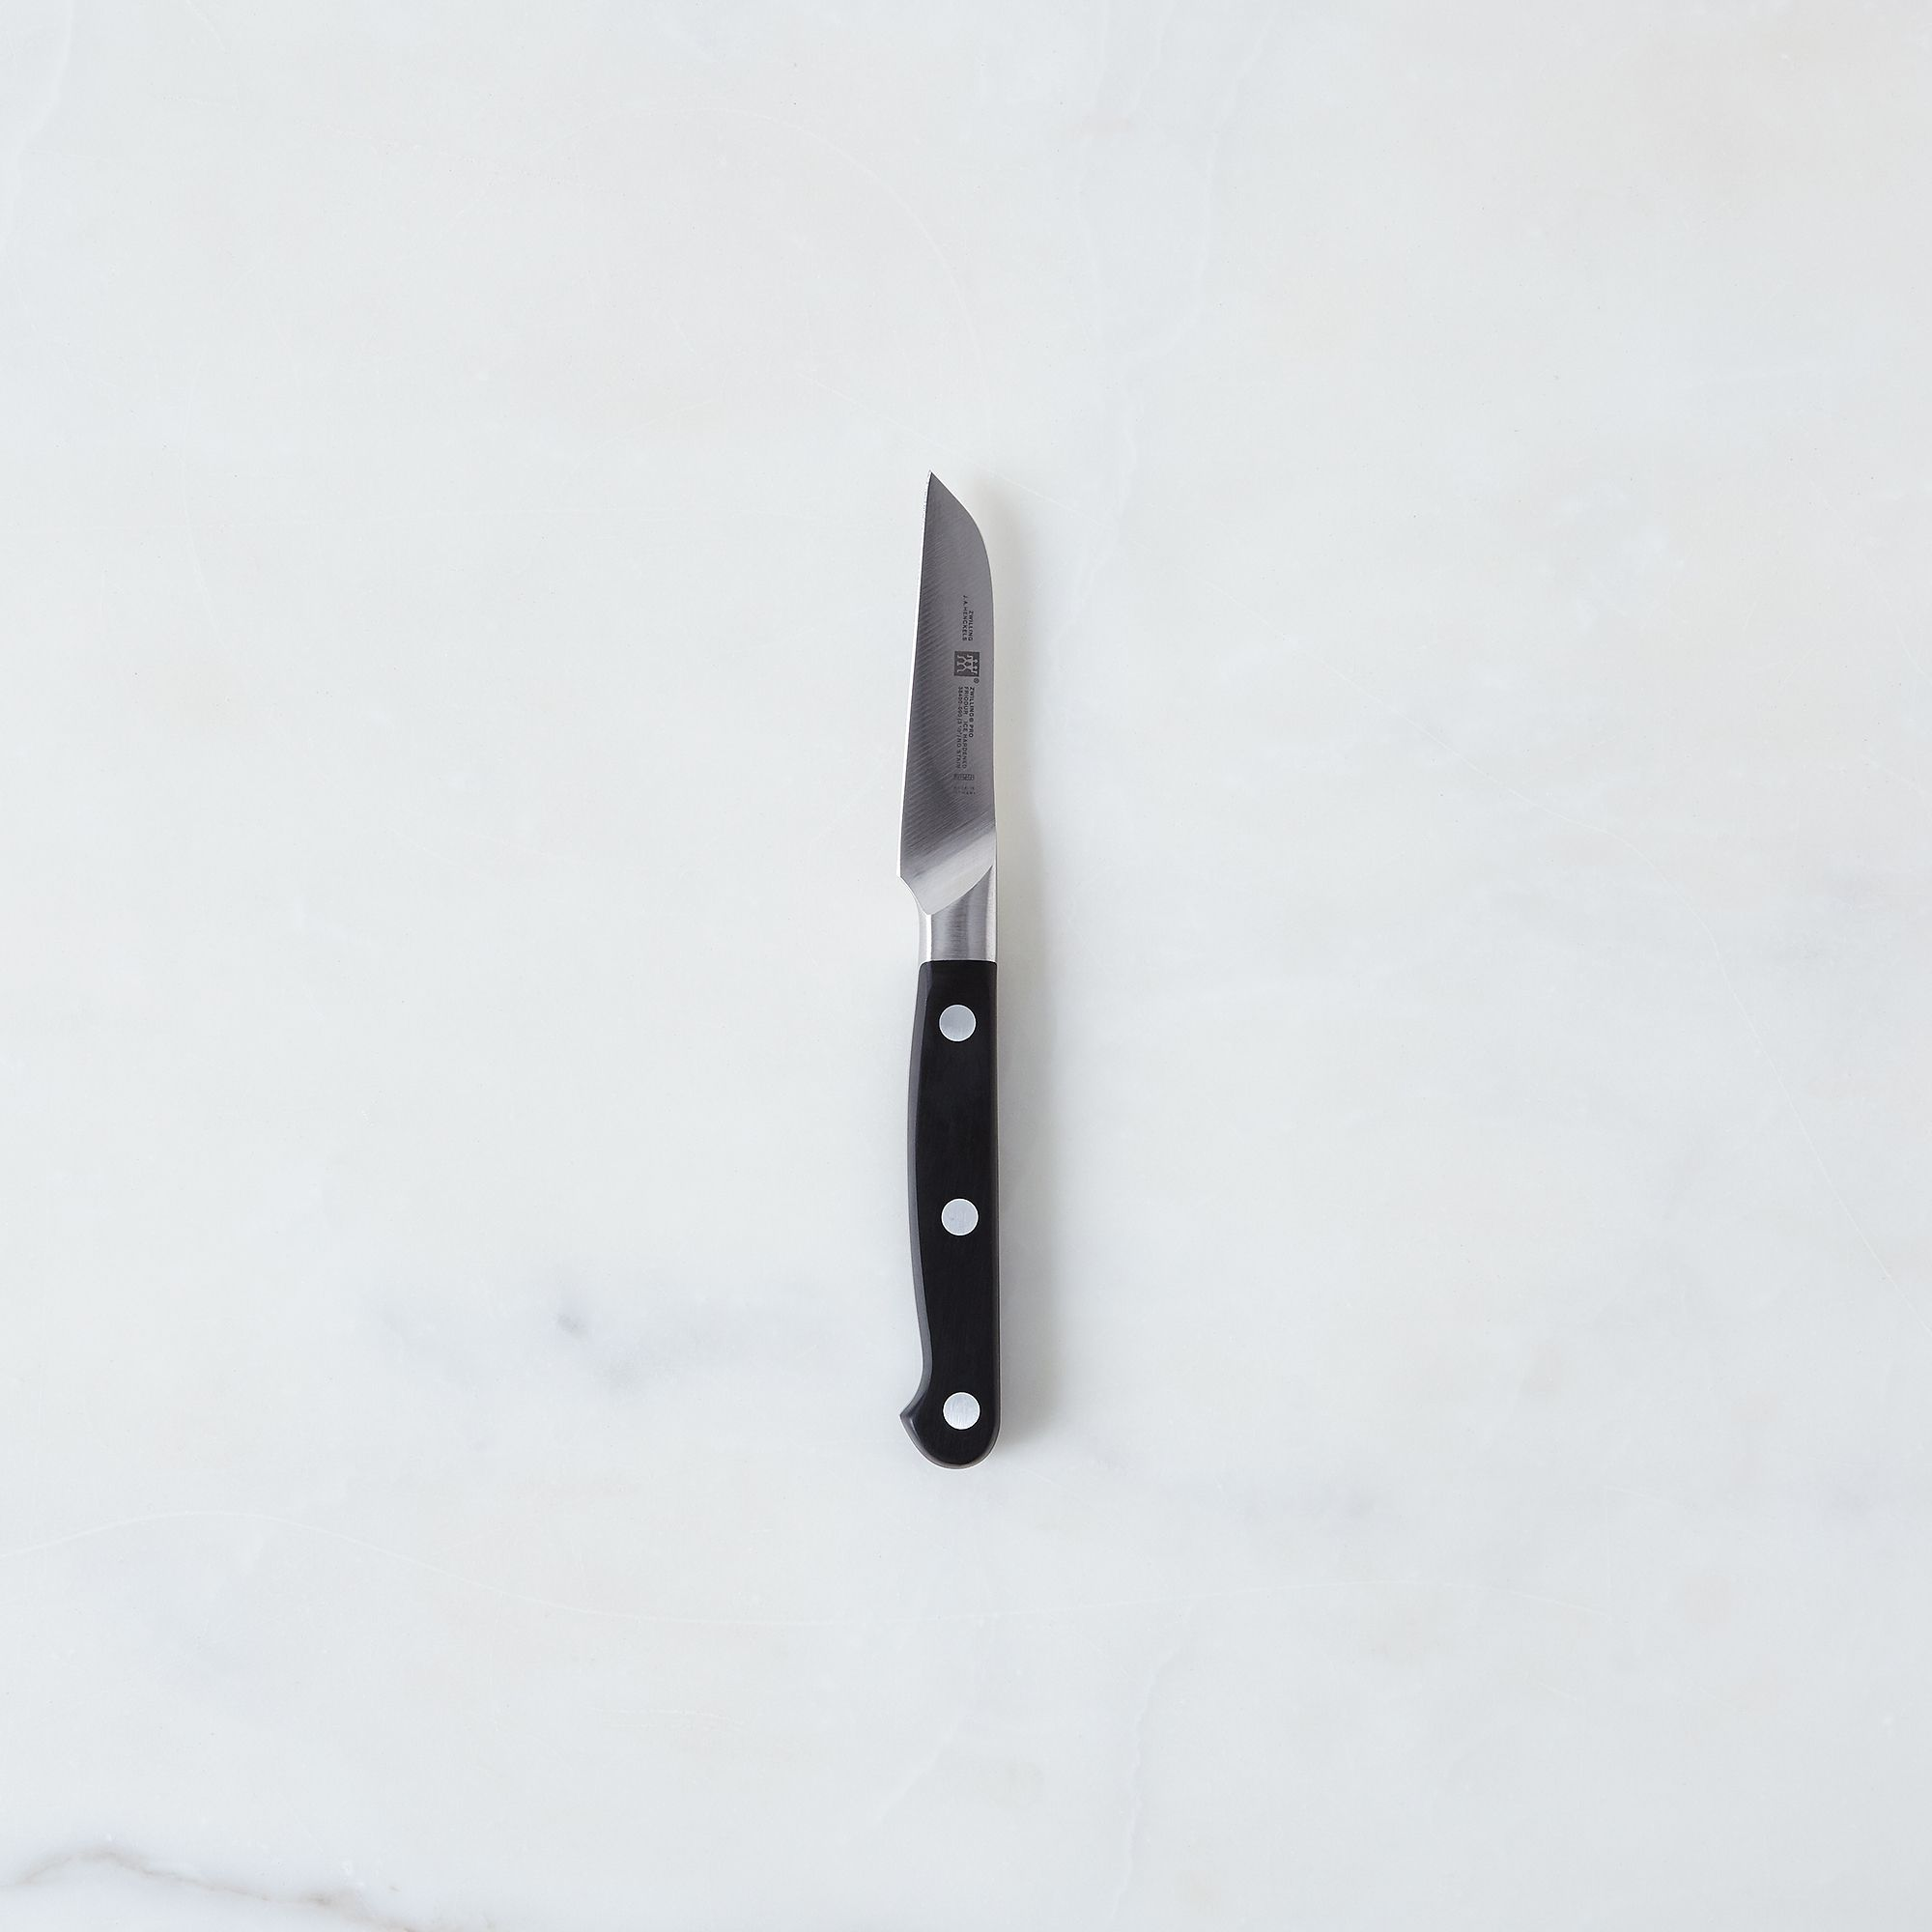 7e5aef6c 2140 487c 8643 9a956caf8c3b  2016 0617 zwilling pro knives 3 inch paring knife silo rocky luten 008